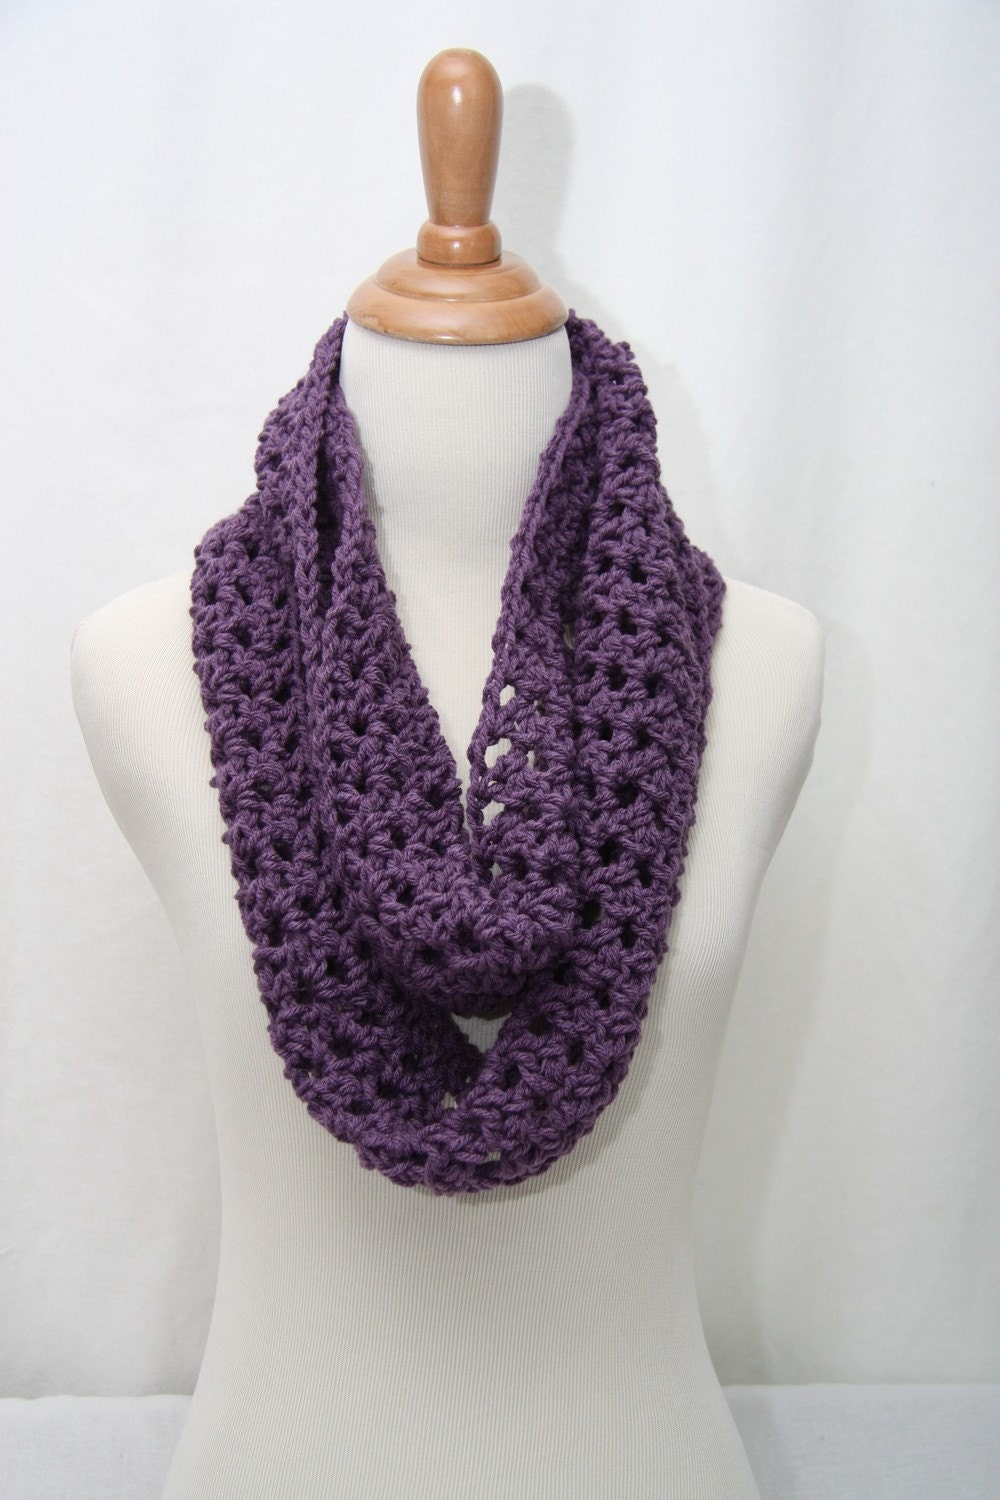 Crocheted Dark Purple Infinity Cowl Neck Scarf by HandmadeByLarrie Cowl Neck Scarves Crochet